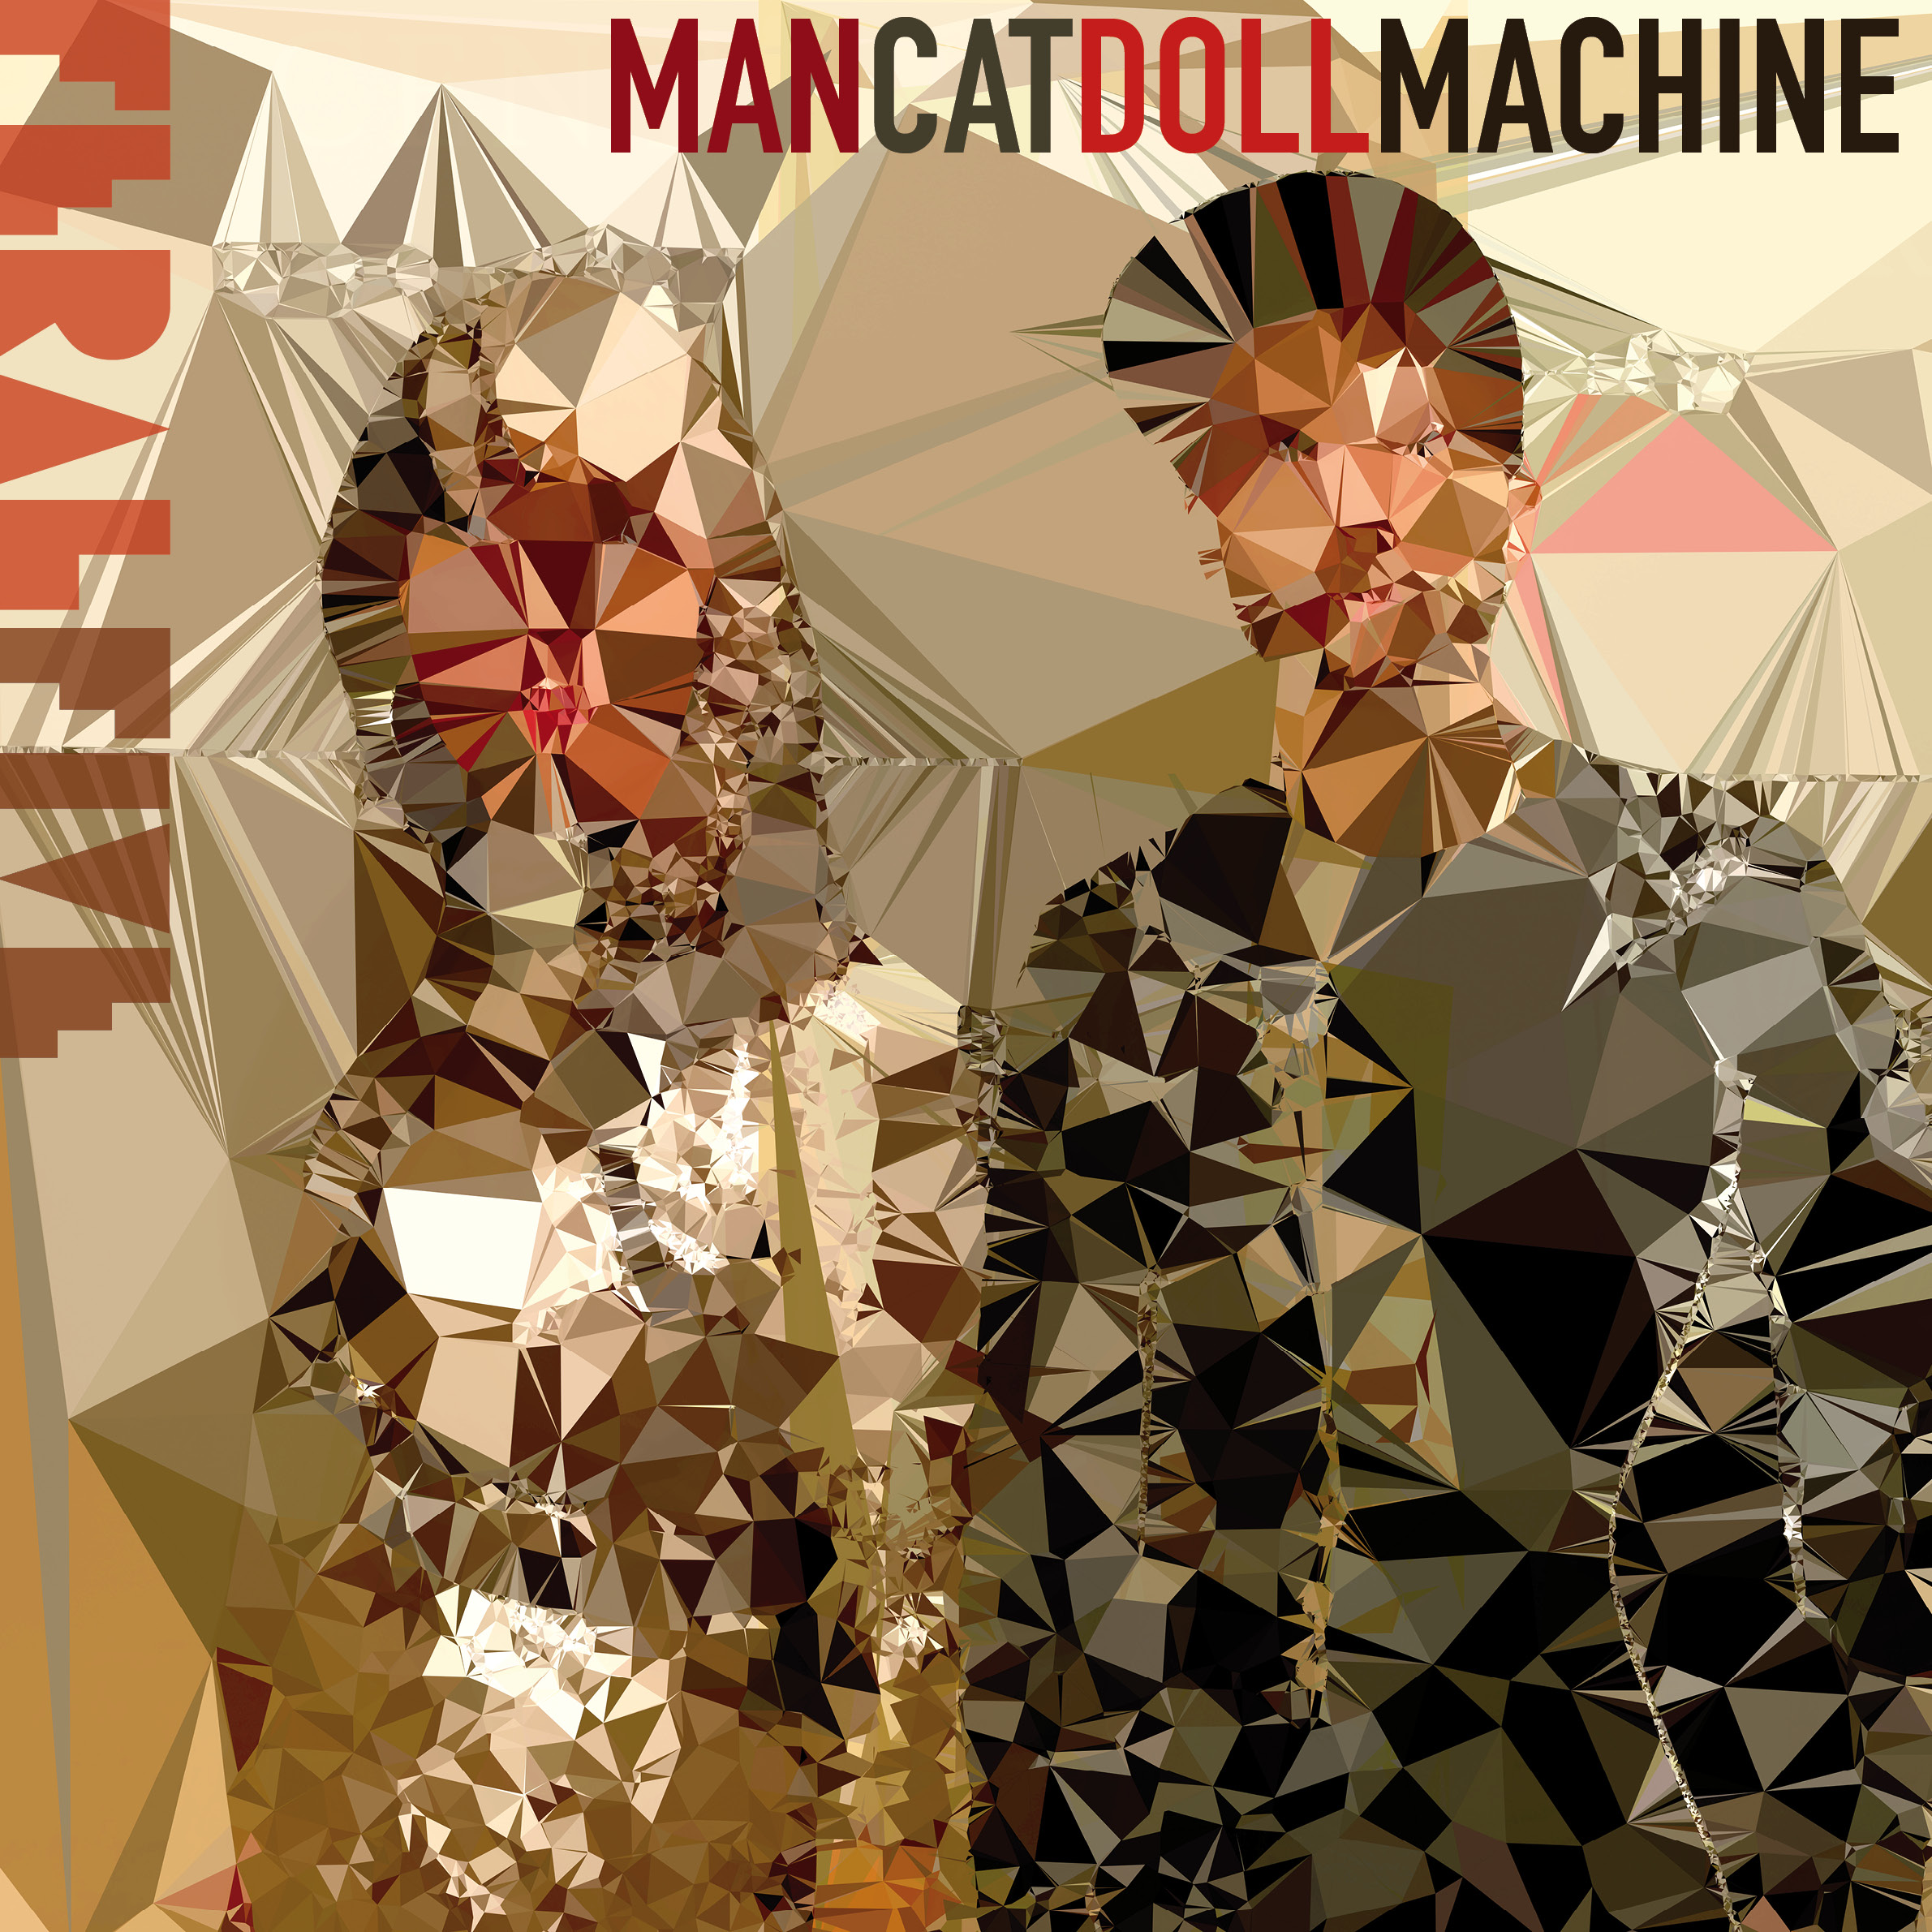 Feral Five Man Cat Doll Machine EP Cover Art by Tracey Moberly Design and Code Jonathan Moberly